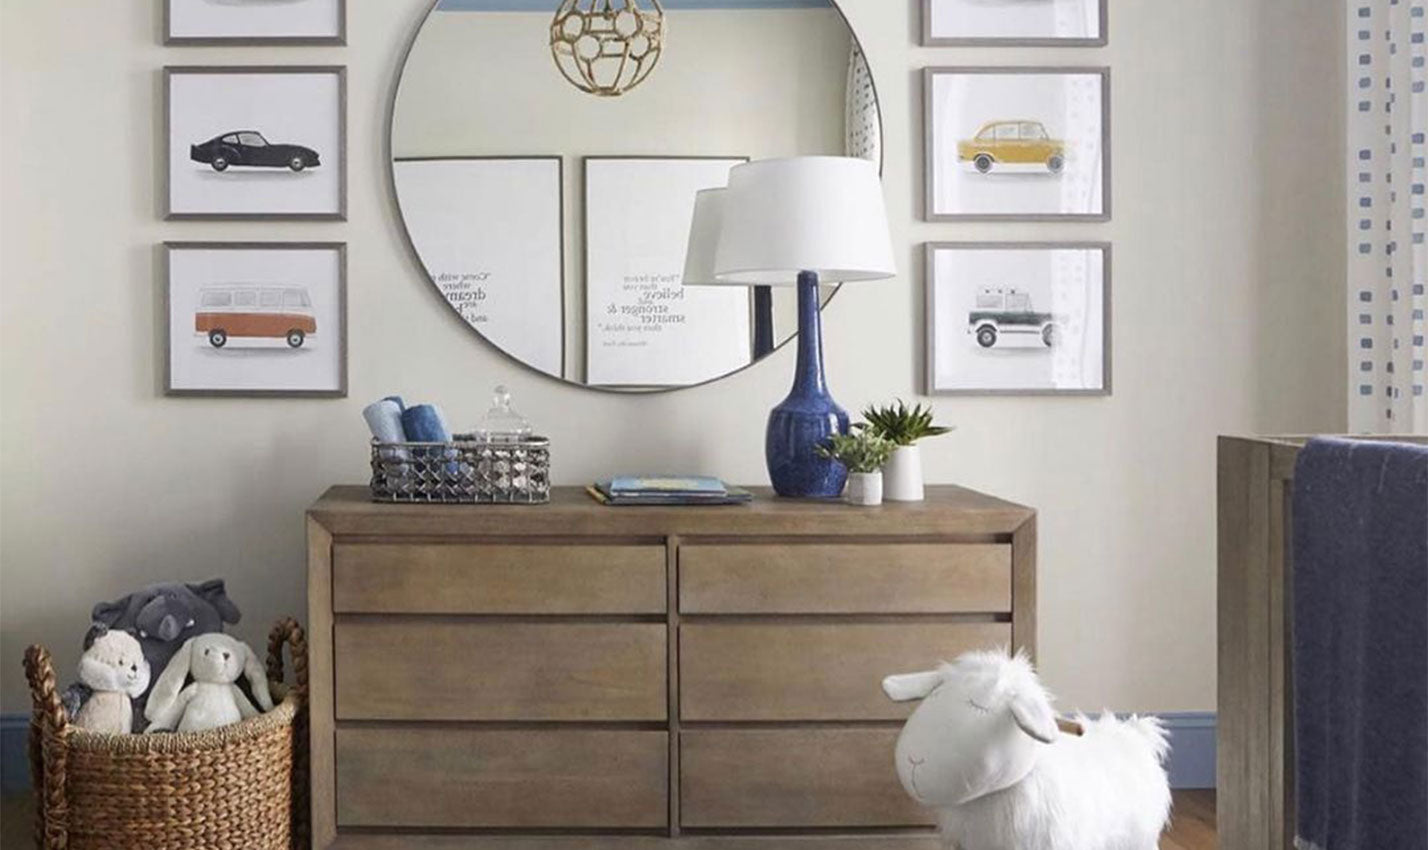 A pale wall with mirror and framed prints/Photography: Curtis Elmy/Designed by Atmosphere Interior Design, this simple space for the future car love features loads of printed artwork